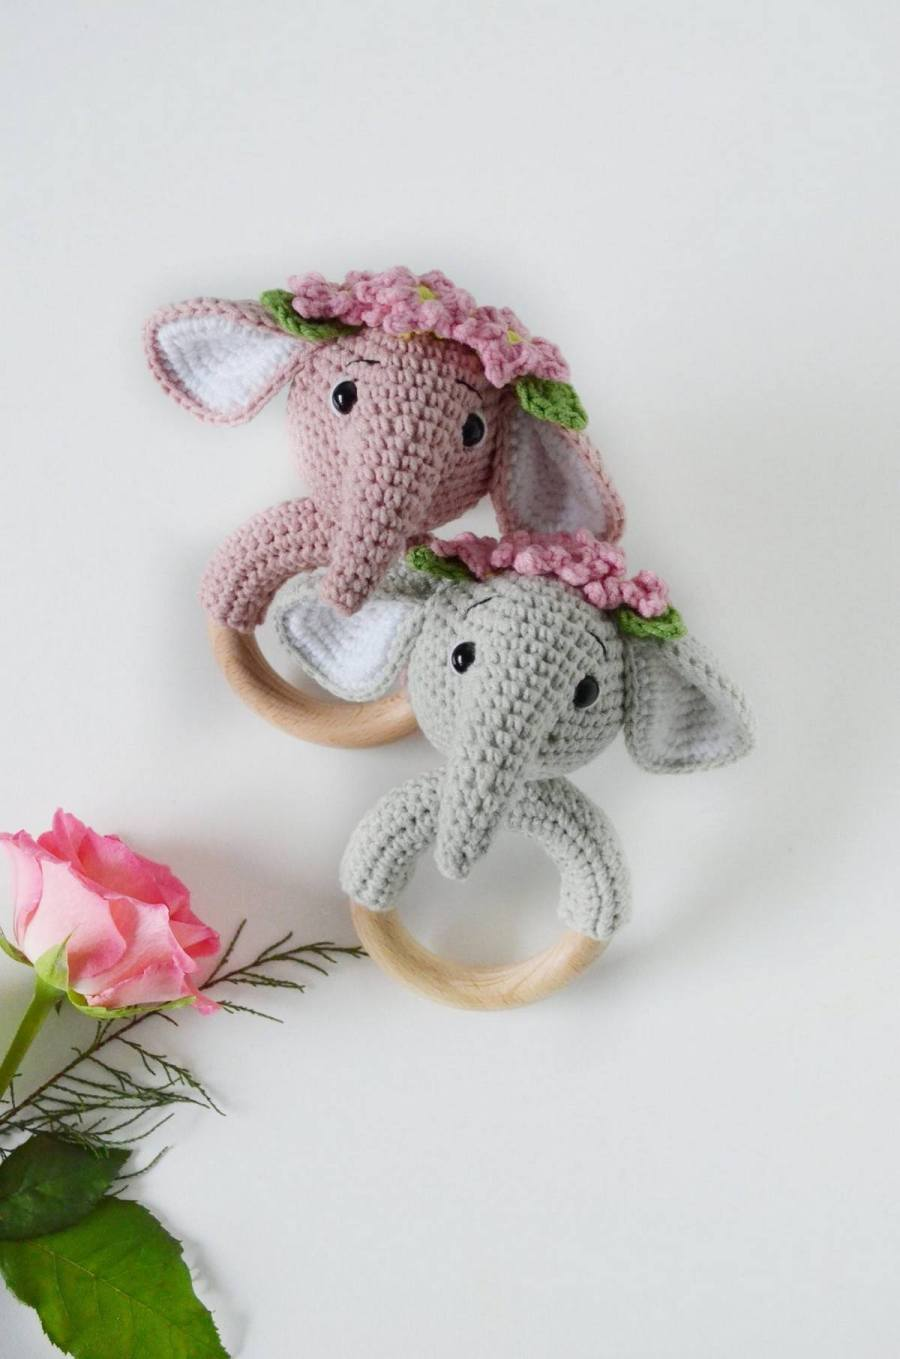 Looking to purchase a baby rattle? These days there is a dizzying amount of rattles for baby to choose from in the baby toy aisle.  Parents want the best for the child. There's nothing more fun than watching your baby shake, jiggle, and play with a baby rattle.